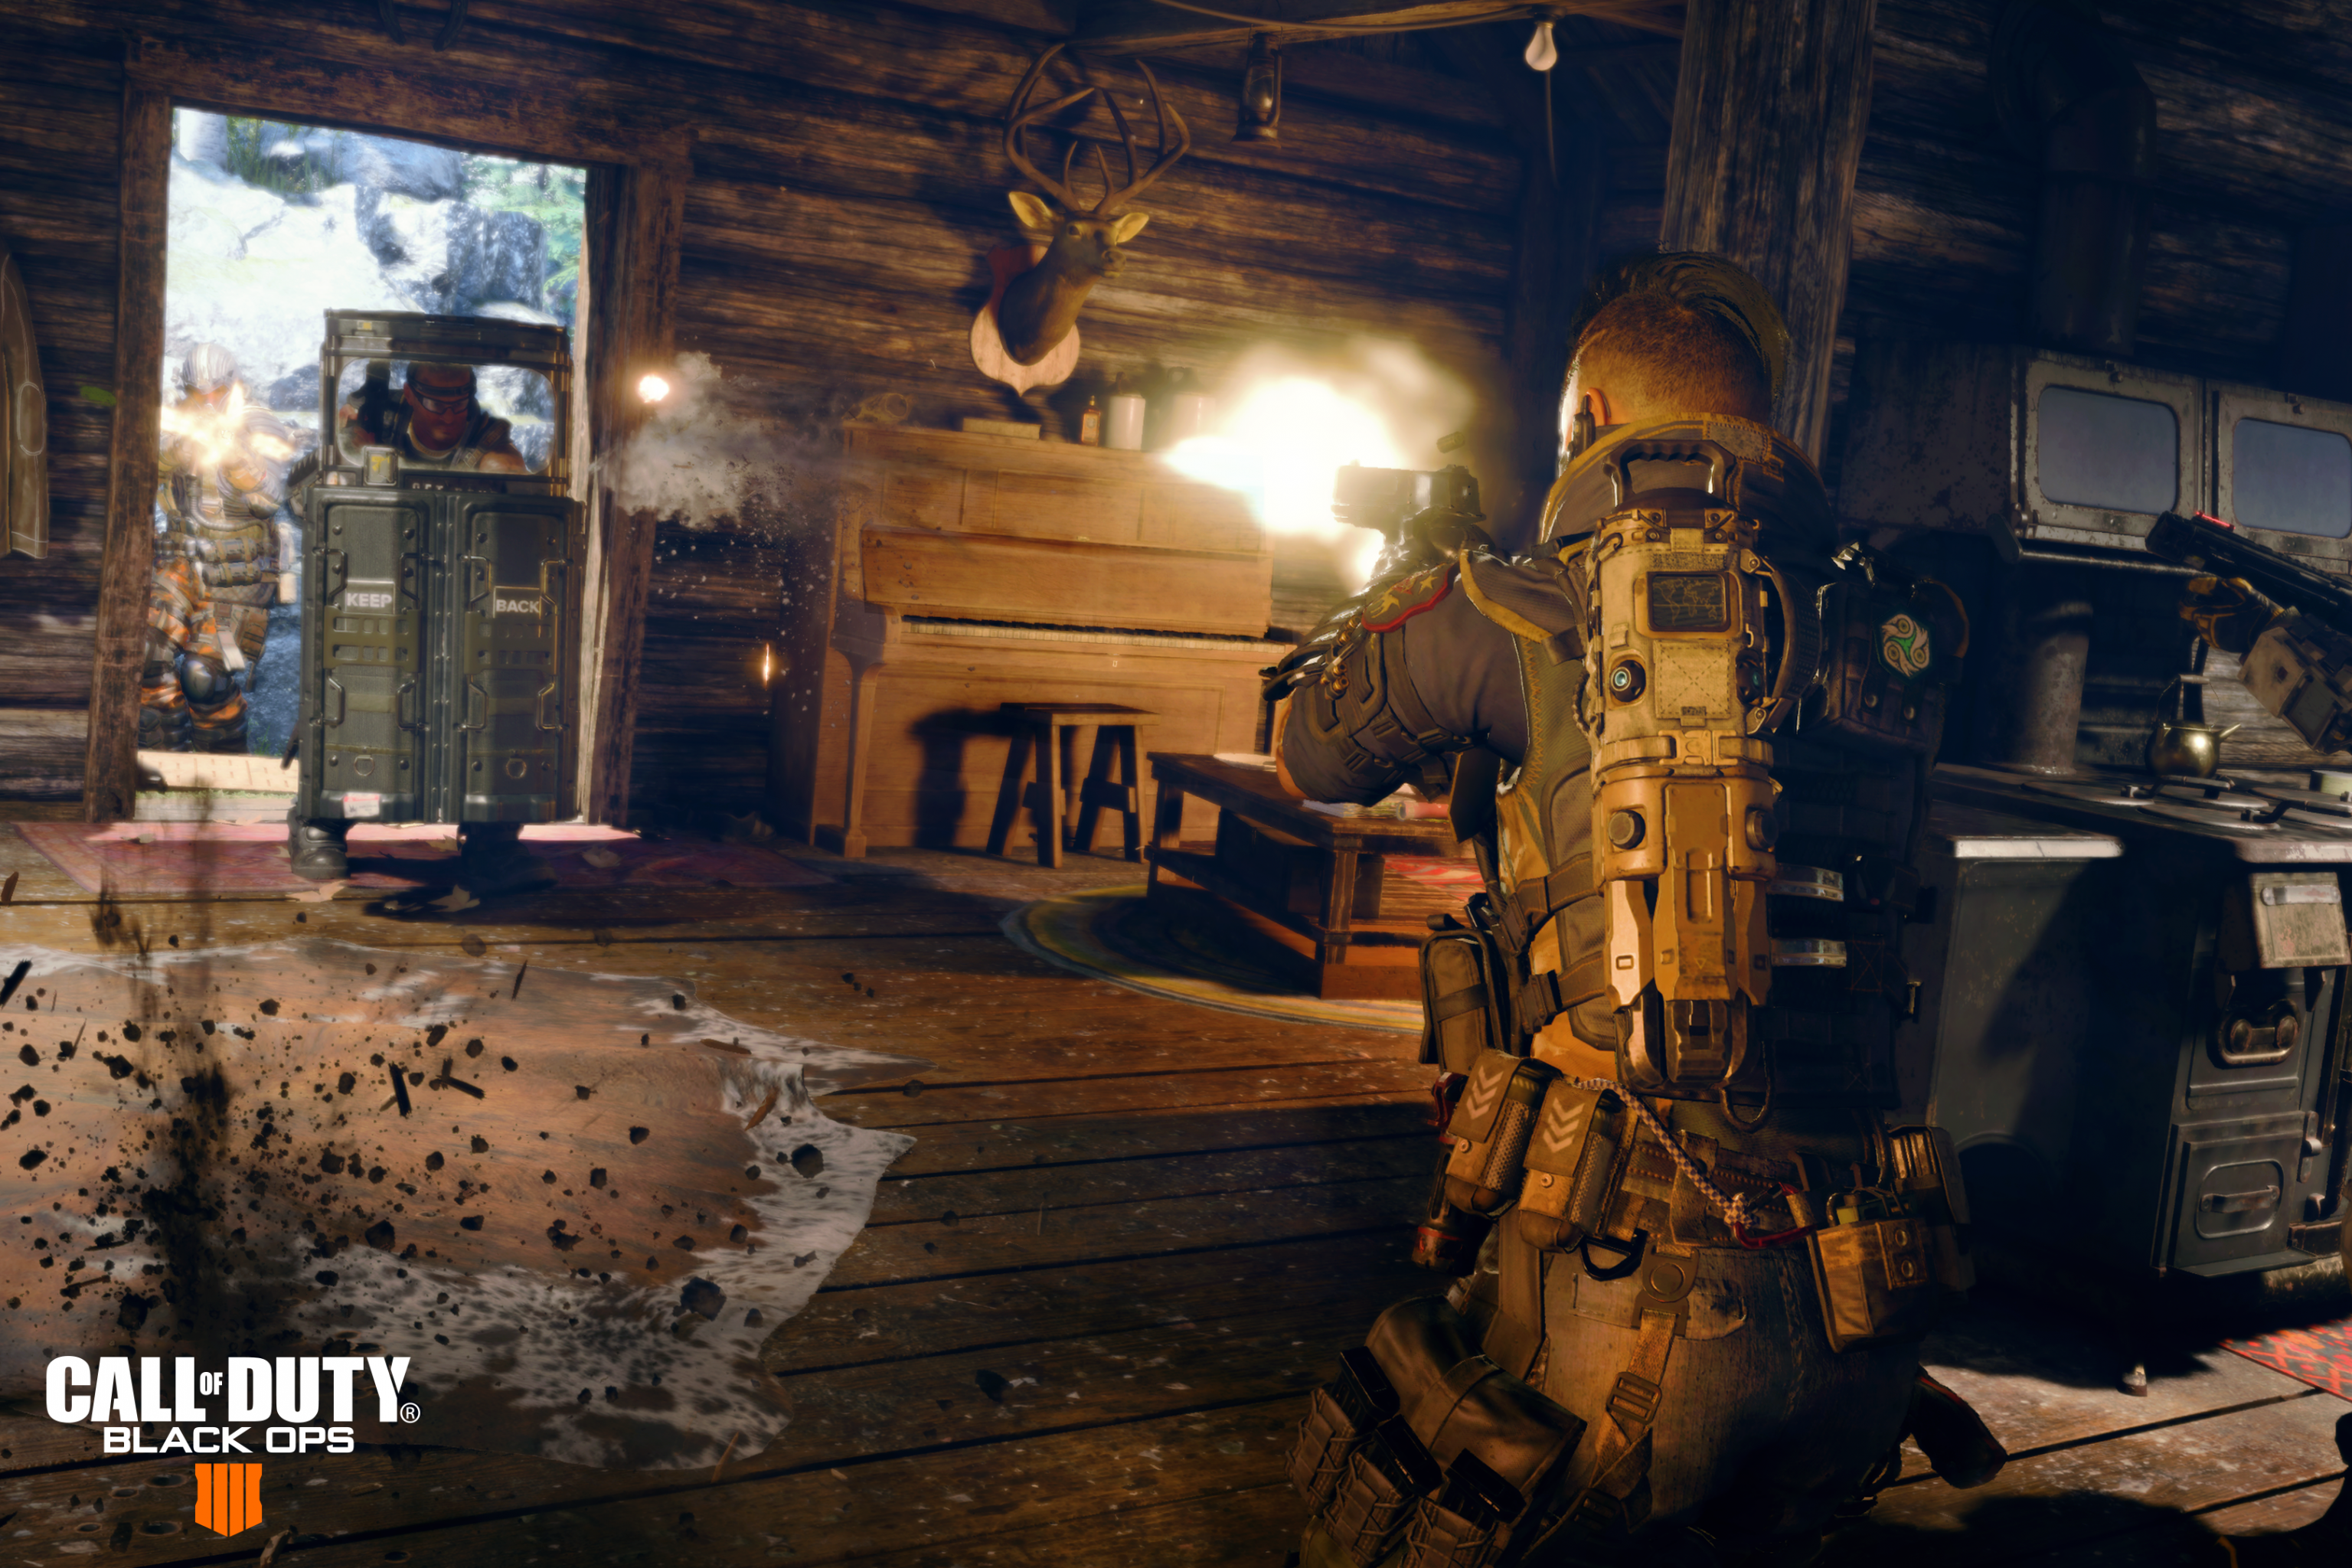 Call of Duty Black Ops 4 Review: Impressions for Blackout, Zombies Zombies Tranzit Maps Routes on tranzit map overview, exo zombies map, bo2 tranzit map, for black ops 2 tranzit map, cornfield tranzit map, tranzit strategy map, call of duty black ops 2 tranzit map, cod 2 tranzit map, tranzit map layout with items, minecraft black ops 2 tranzit map, hidden in tranzit map,